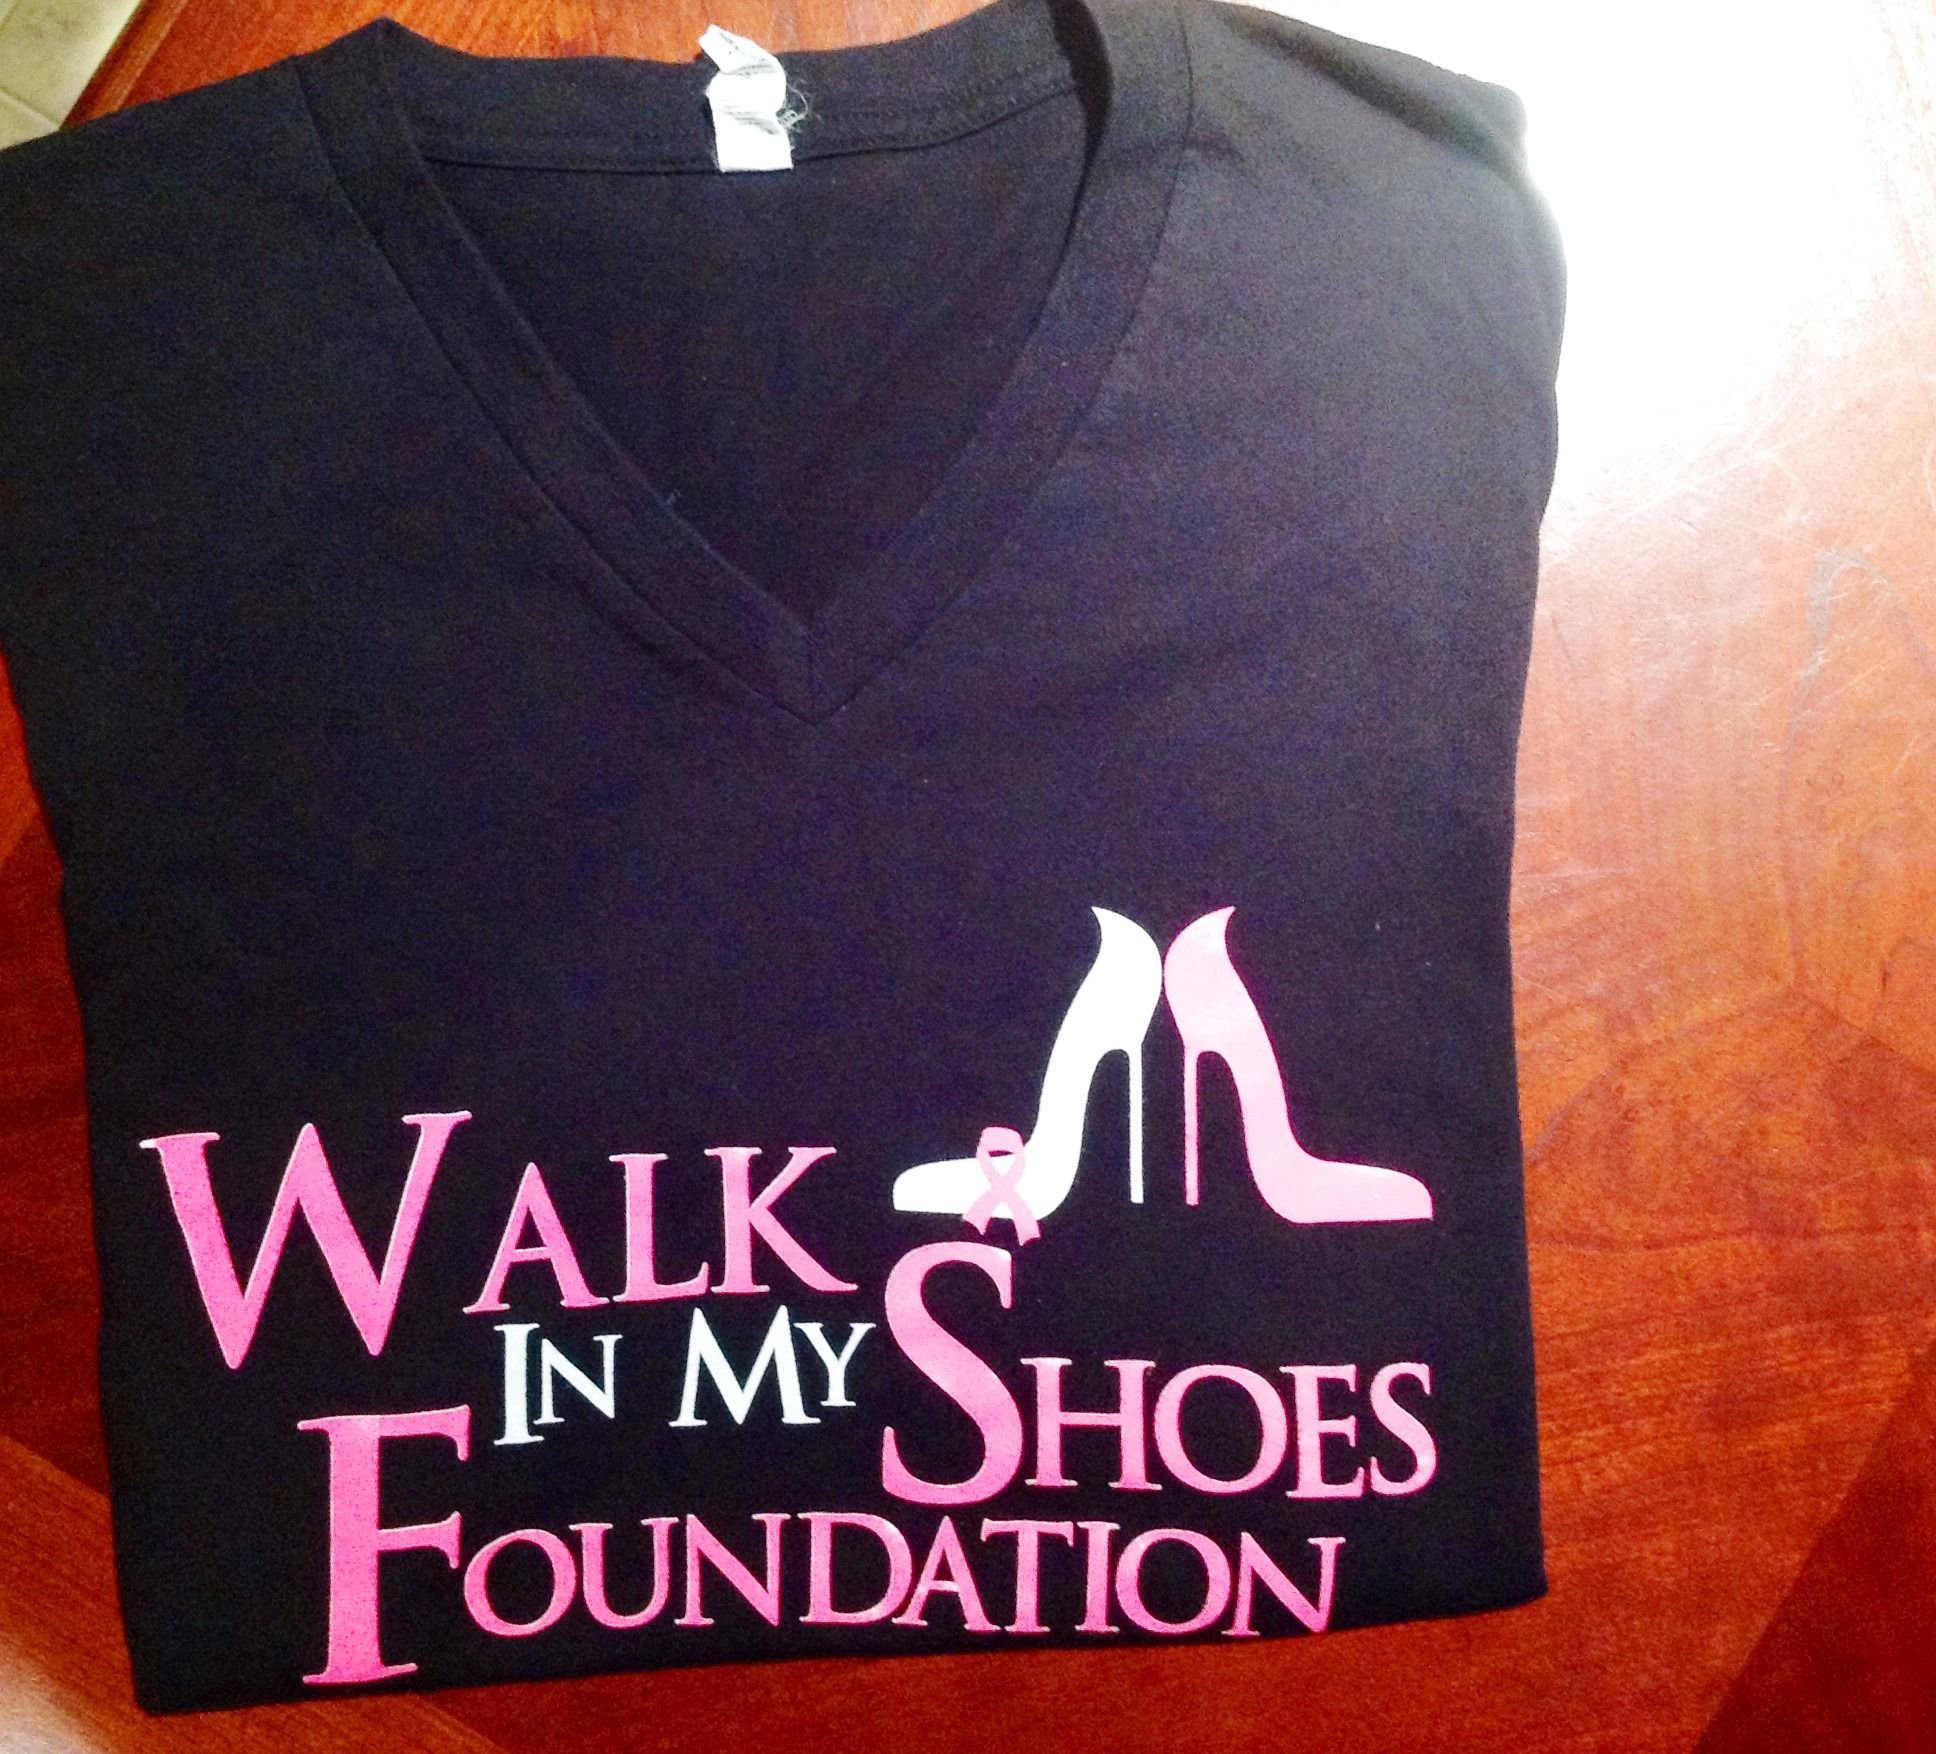 Free Giveaway: Walk In My Shoes Foundation Shirt   Enter Here: http://www.giveawaytab.com/mob.php?pageid=261974163972065